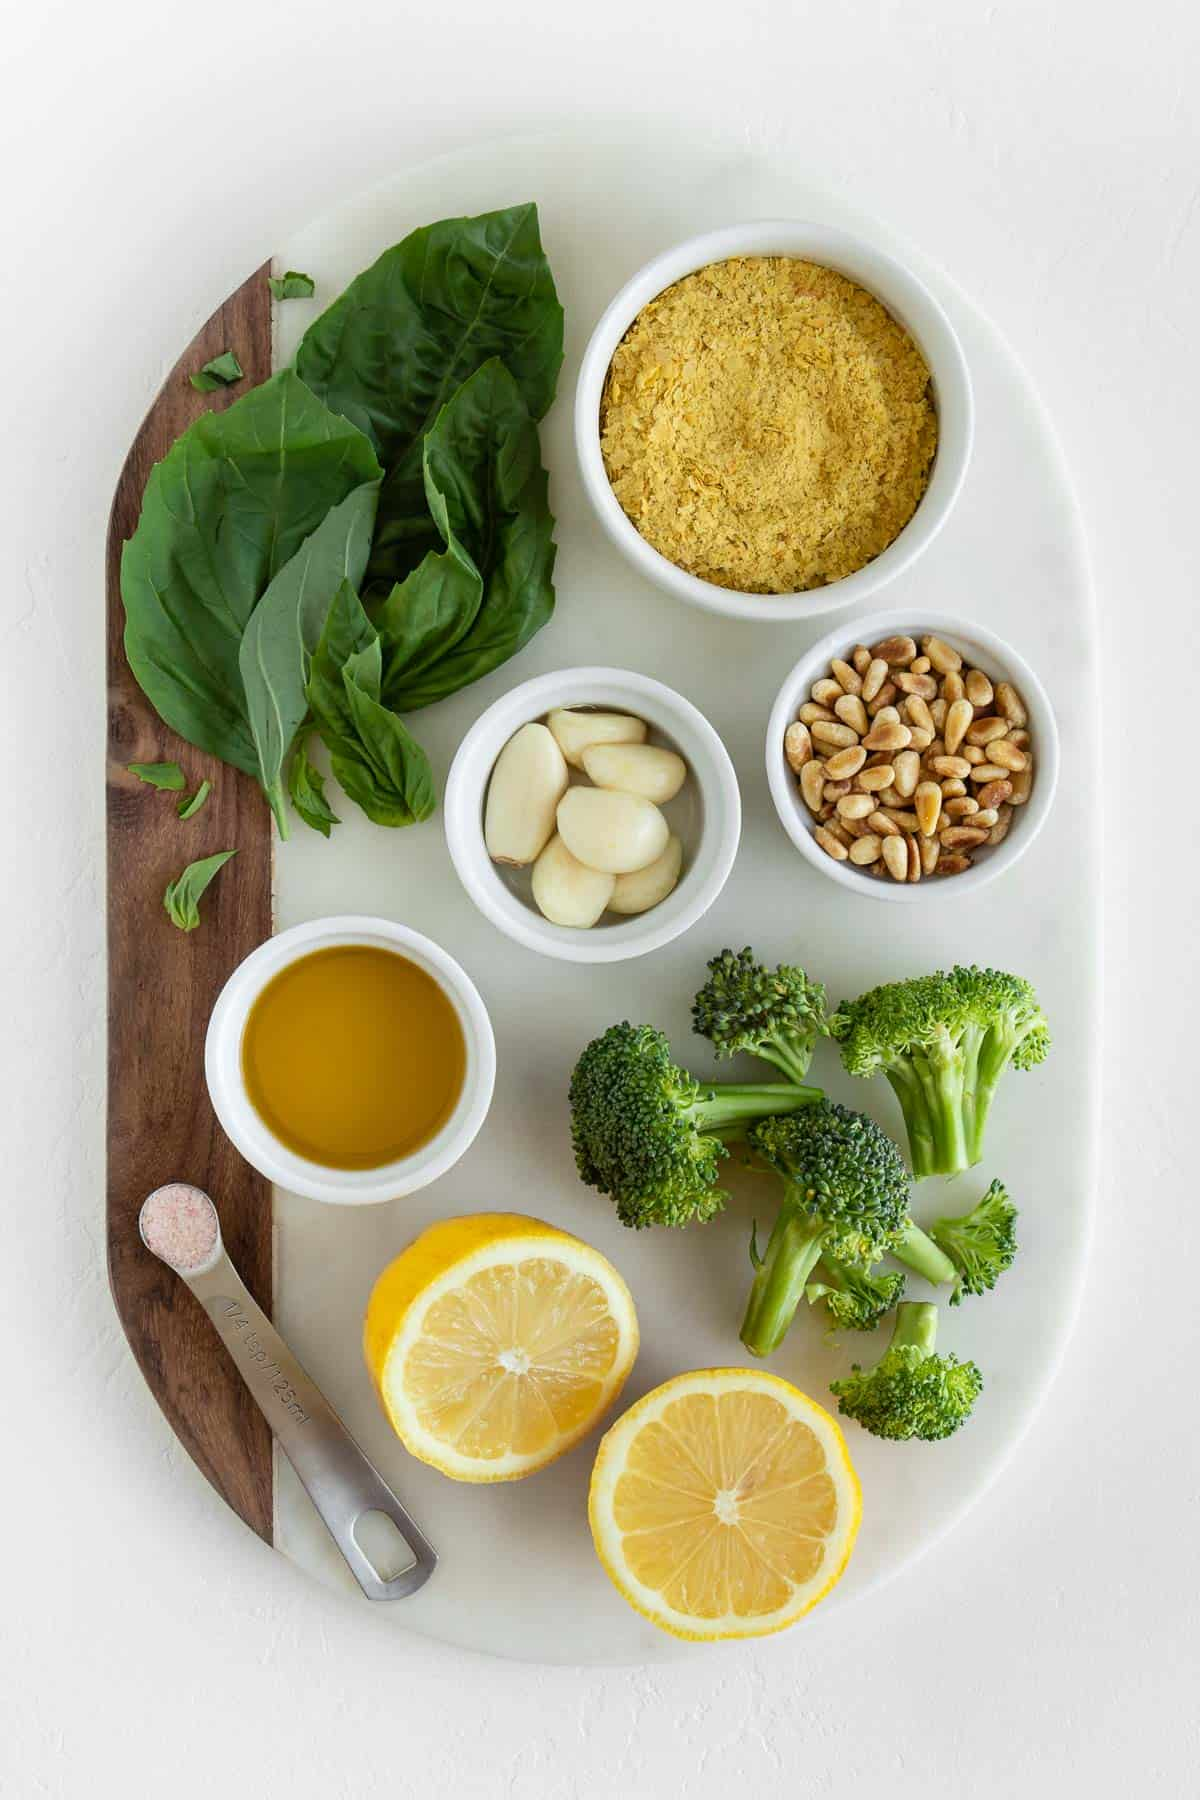 basil, pine nuts, garlic cloves, lemon, olive oil, nutritional yeast, and salt on a white marble board